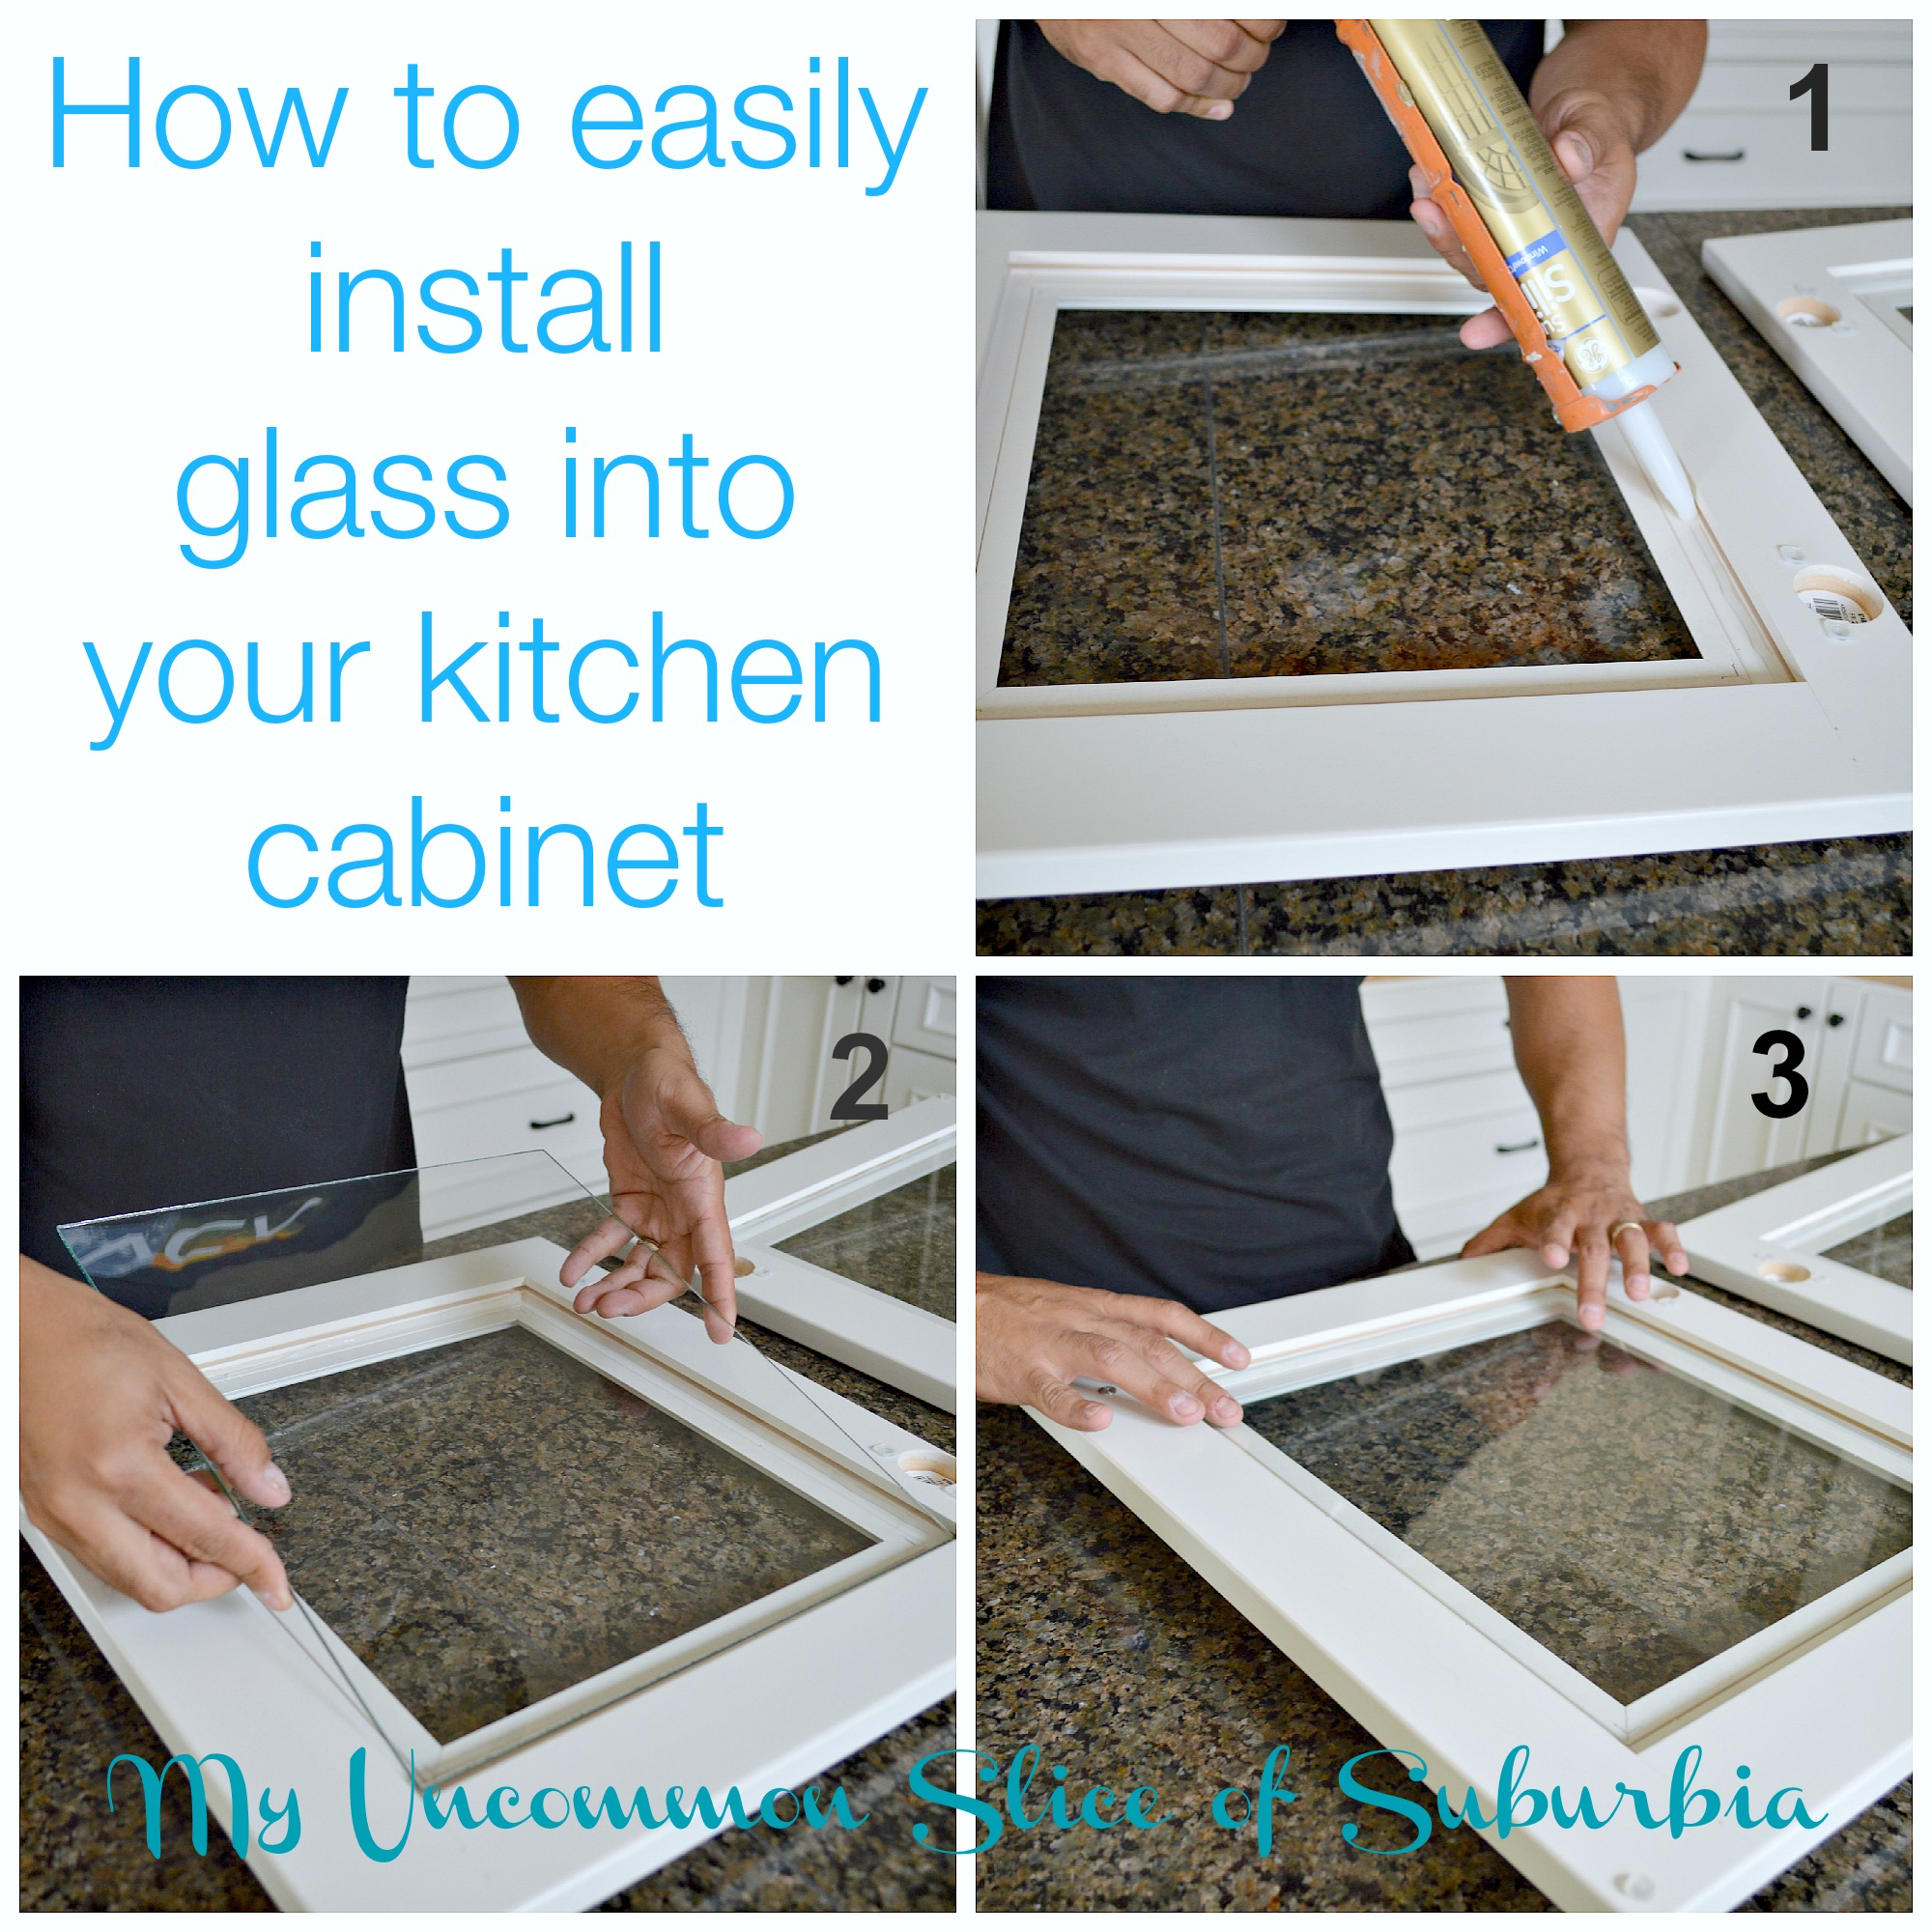 add glass inserts cabinets install kitchen cabinets install glass into your kitchen cabinet